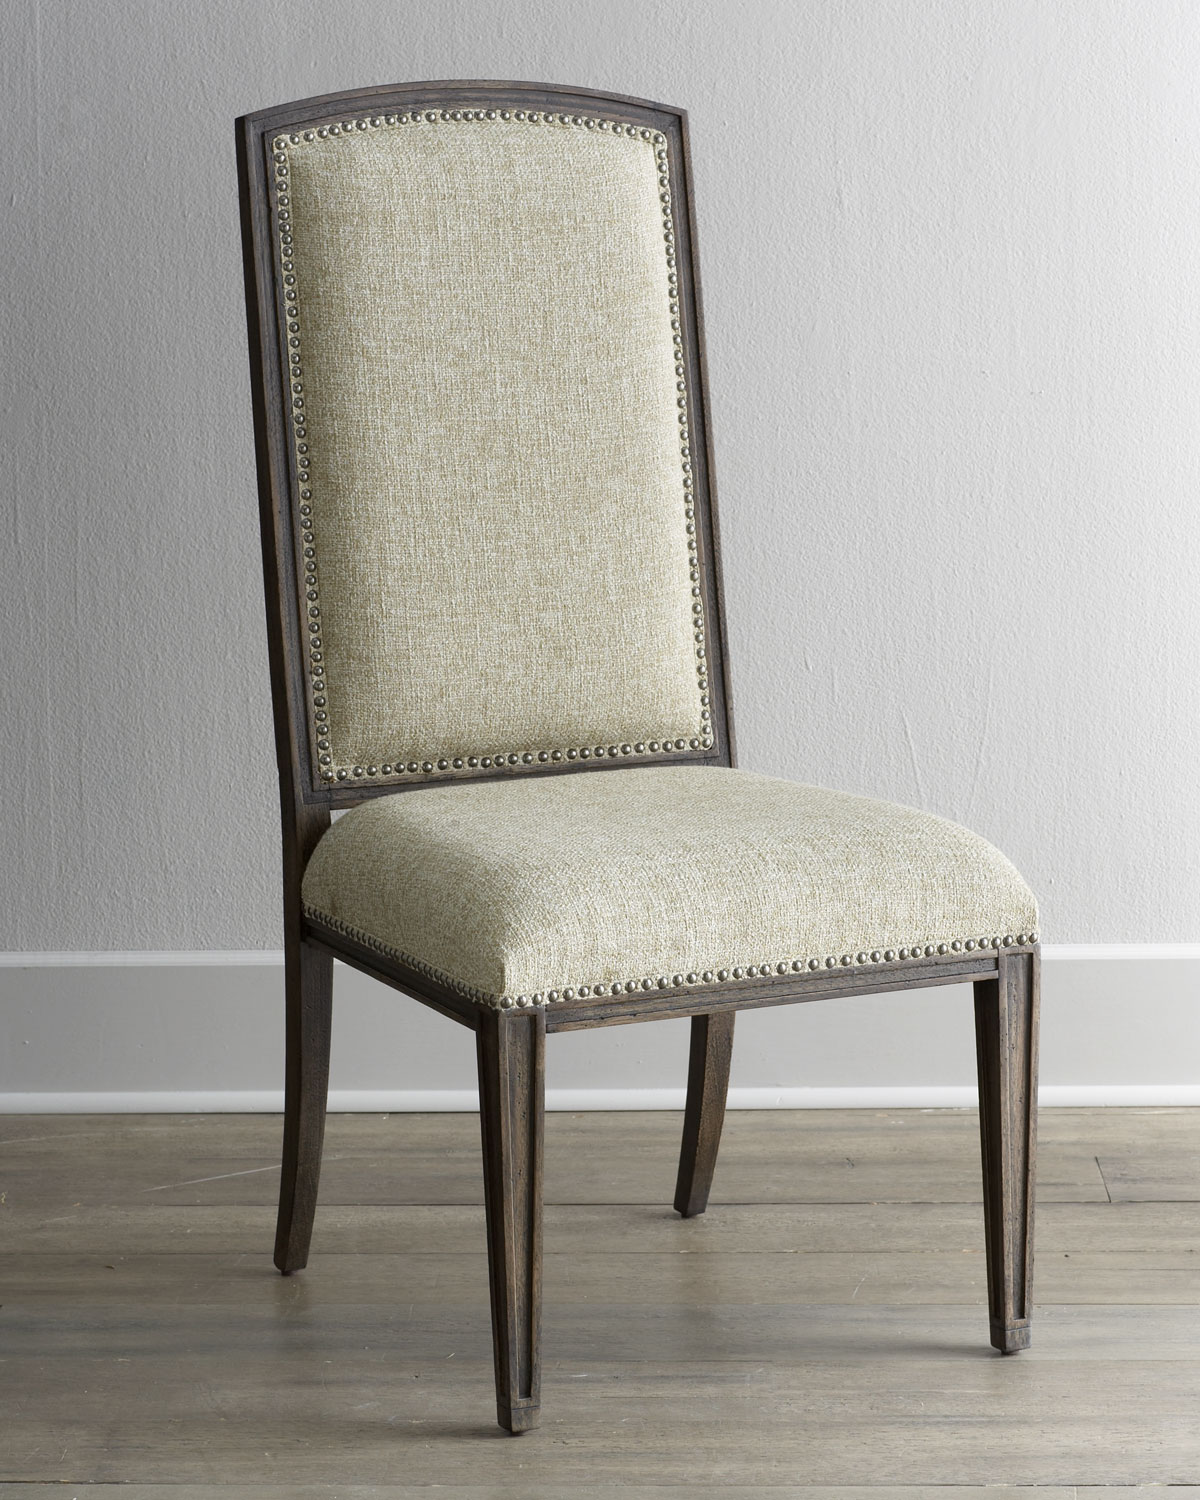 Hooker furnituretwo donabella upholstered side chairs